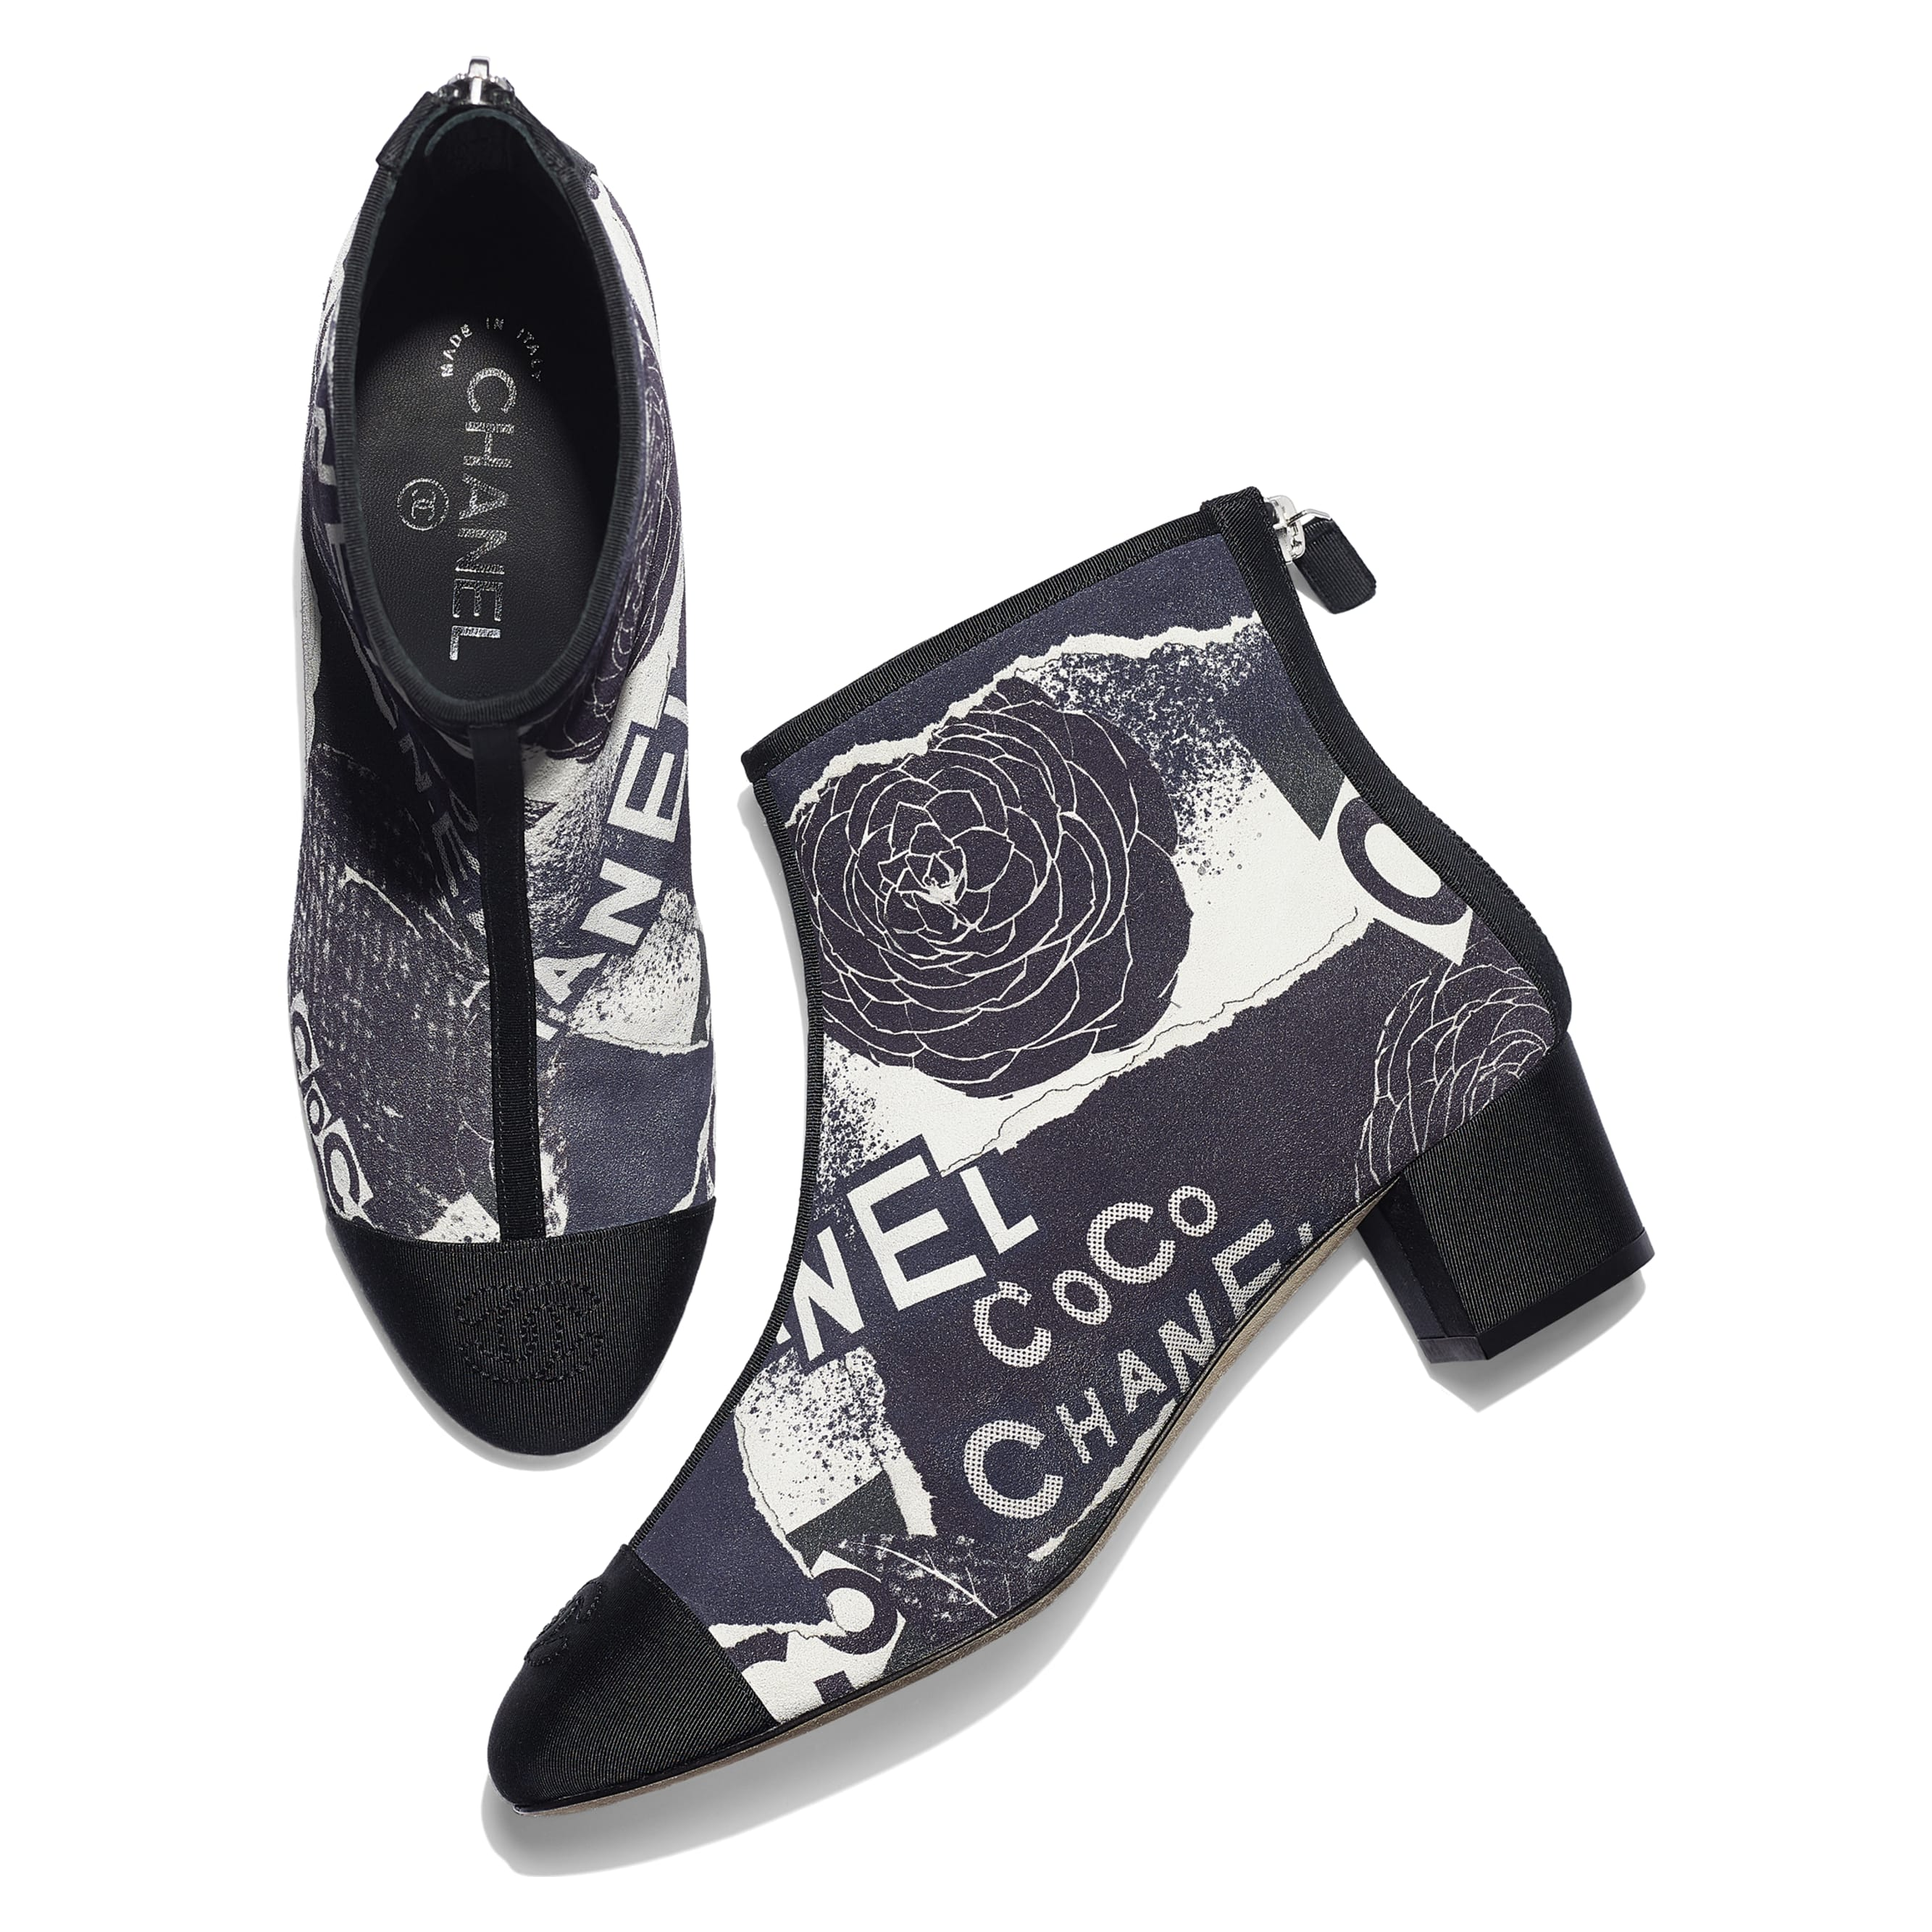 Ankle Boots - Navy Blue, White & Silver - Printed Calfskin & Grosgrain - CHANEL - Extra view - see standard sized version